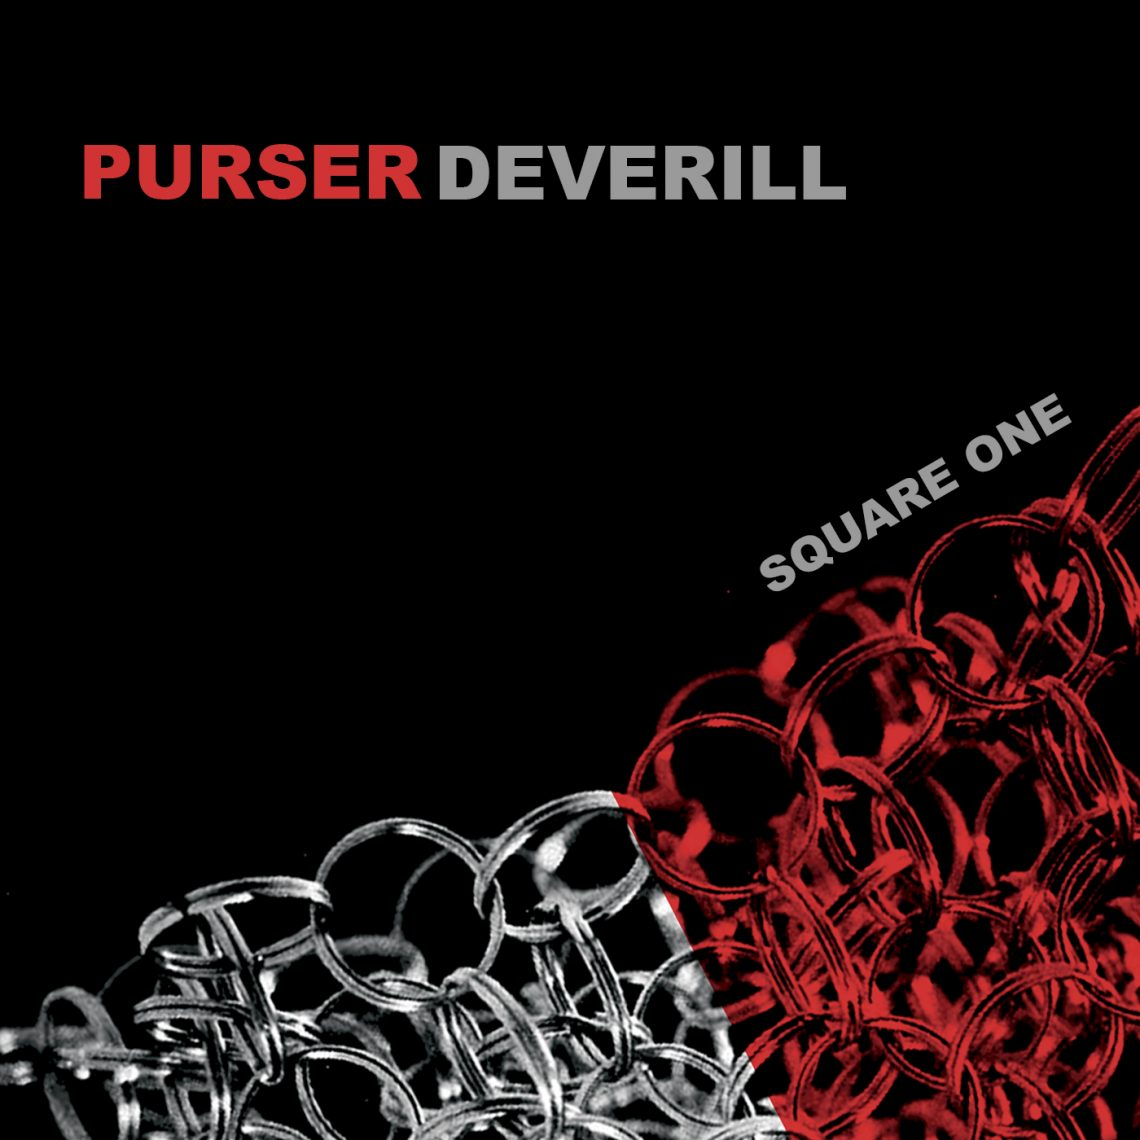 Purser Deverill (featuring ex Tyger Of Pan Tang members) NEW VIDEO PREMIERE